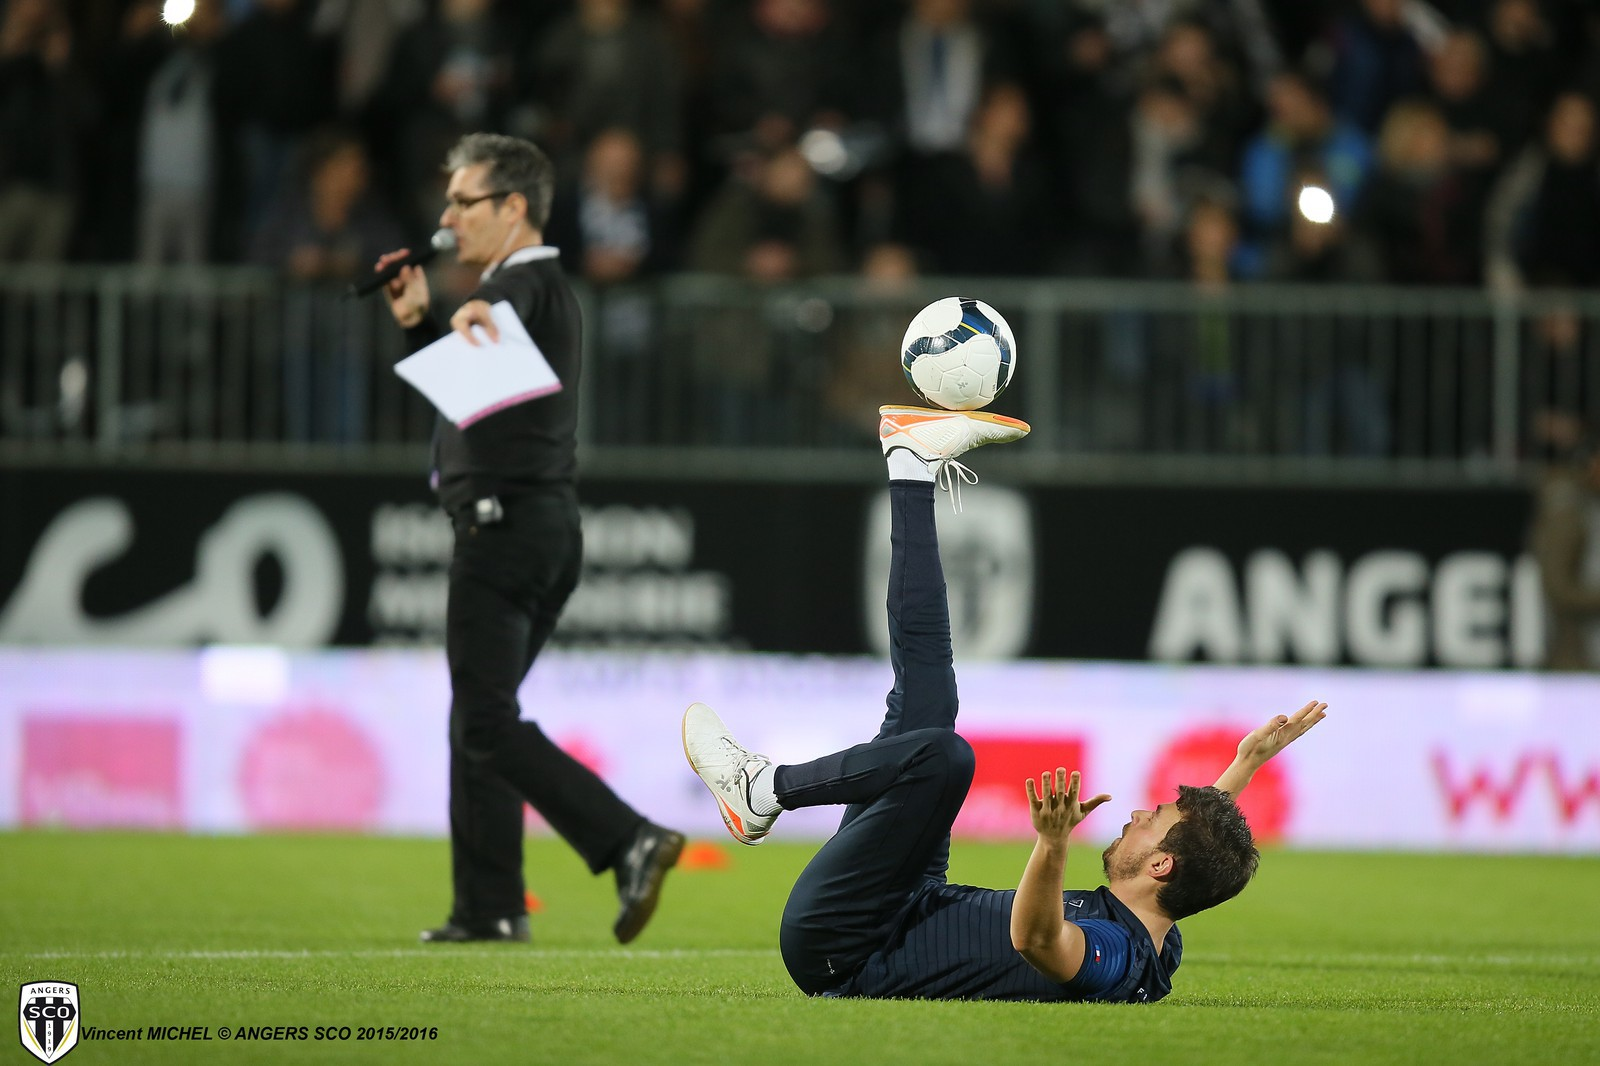 Angers SCO PSG Paris Saint Germain Ibrahimovic Lucas Matuidi joueur footballeur freestyle foot stree